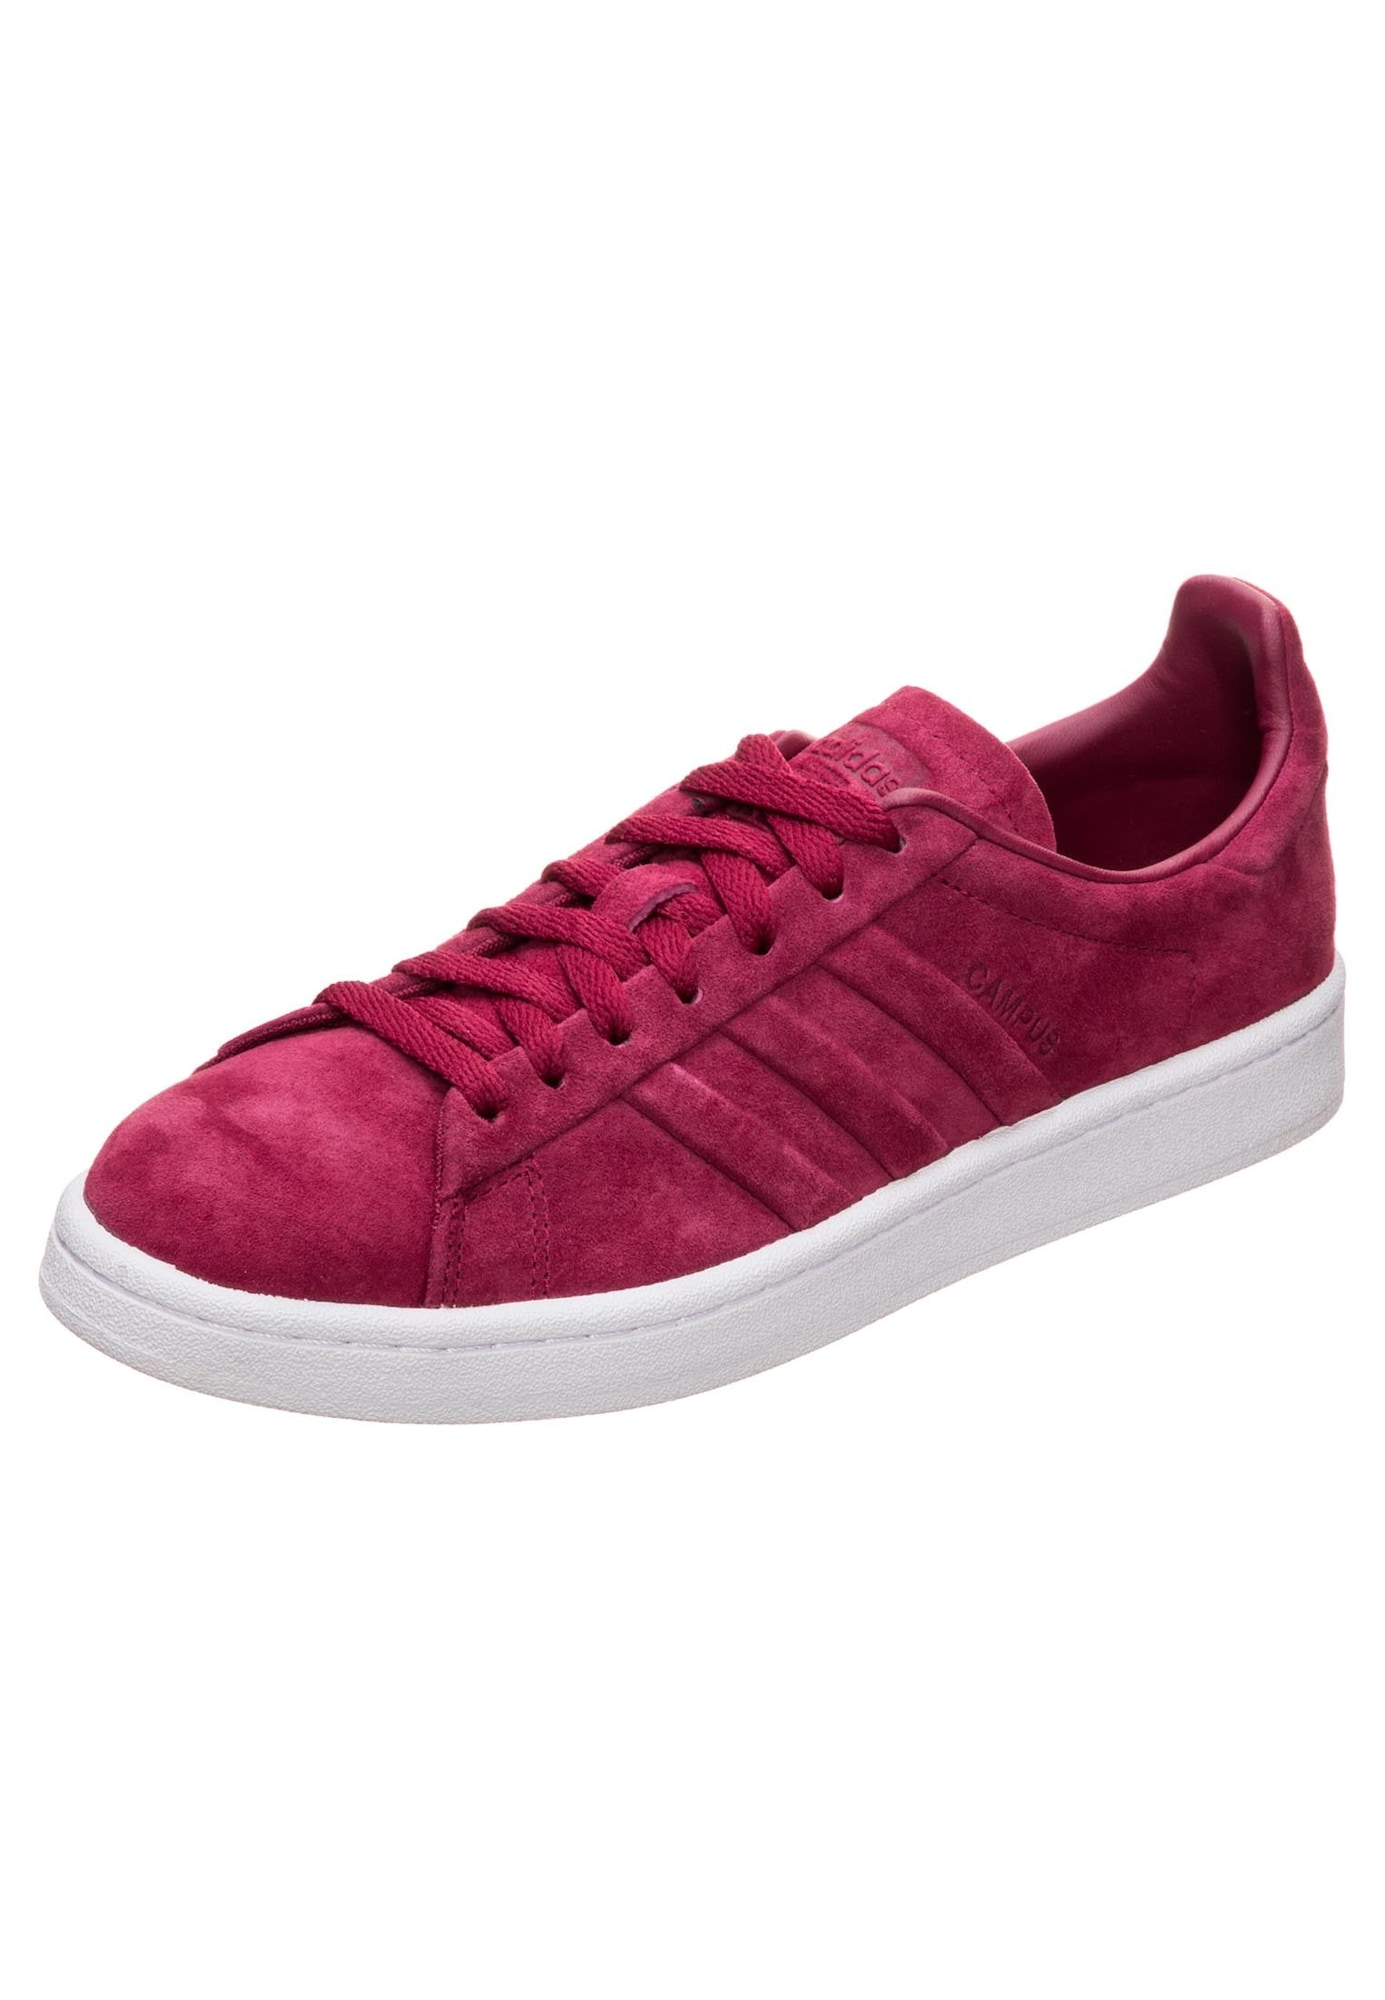 ADIDAS ORIGINALS, Heren Sneakers laag 'Campus Stitch and Turn', bourgogne